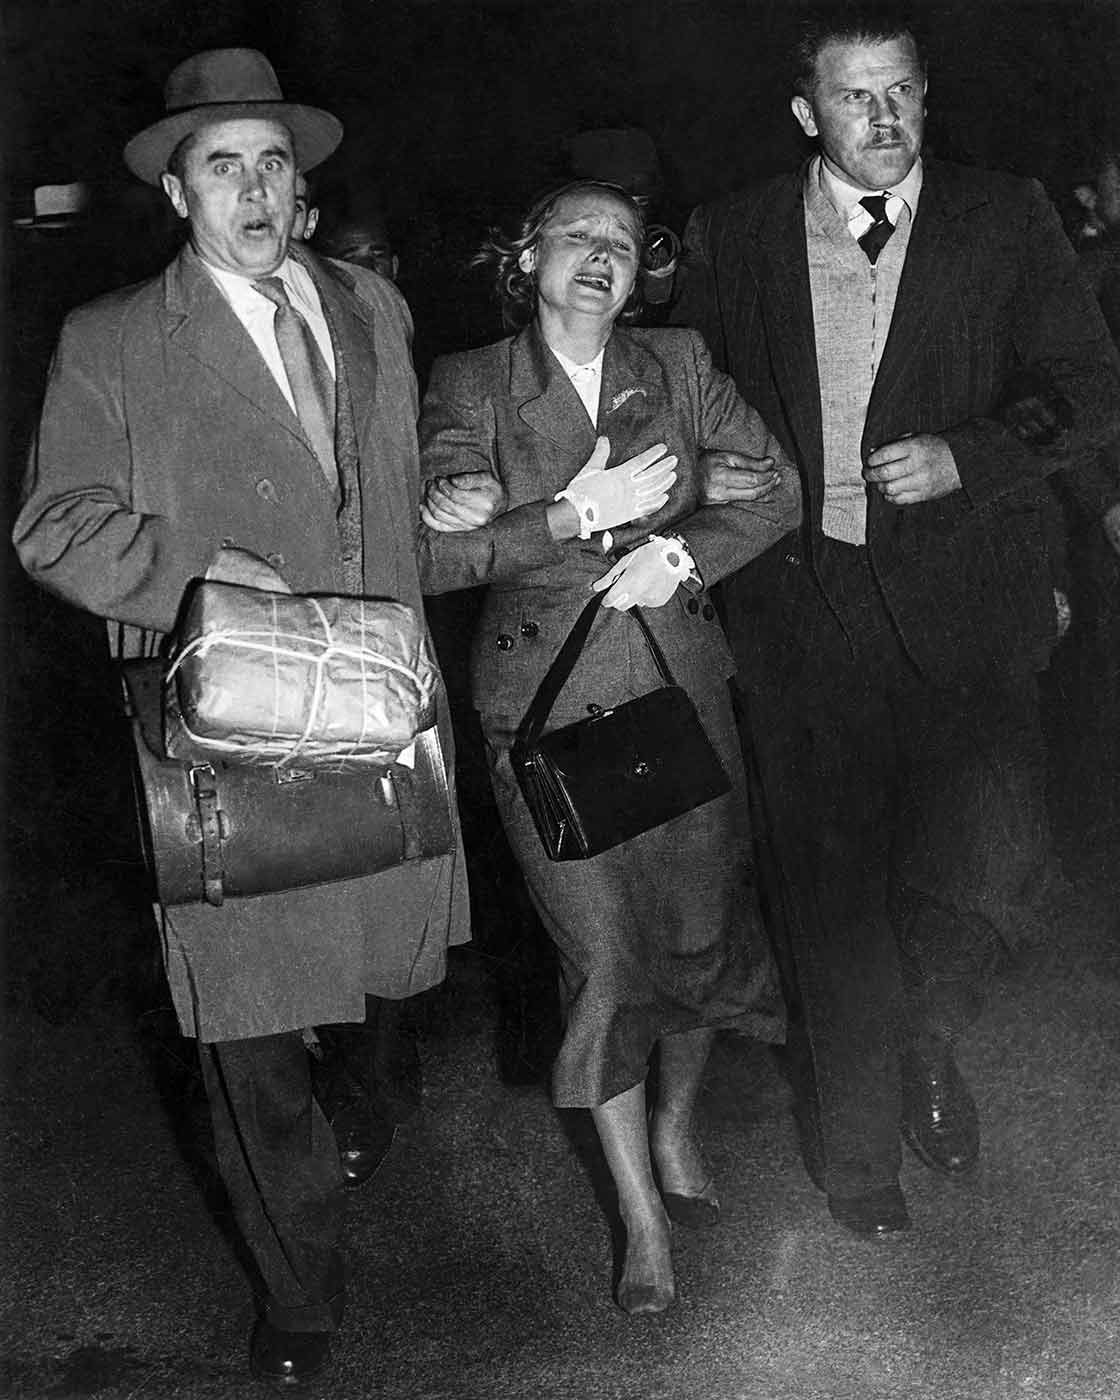 Photo taken at night showing distressed woman flanked by two men in suits holding her arms - click to view larger image